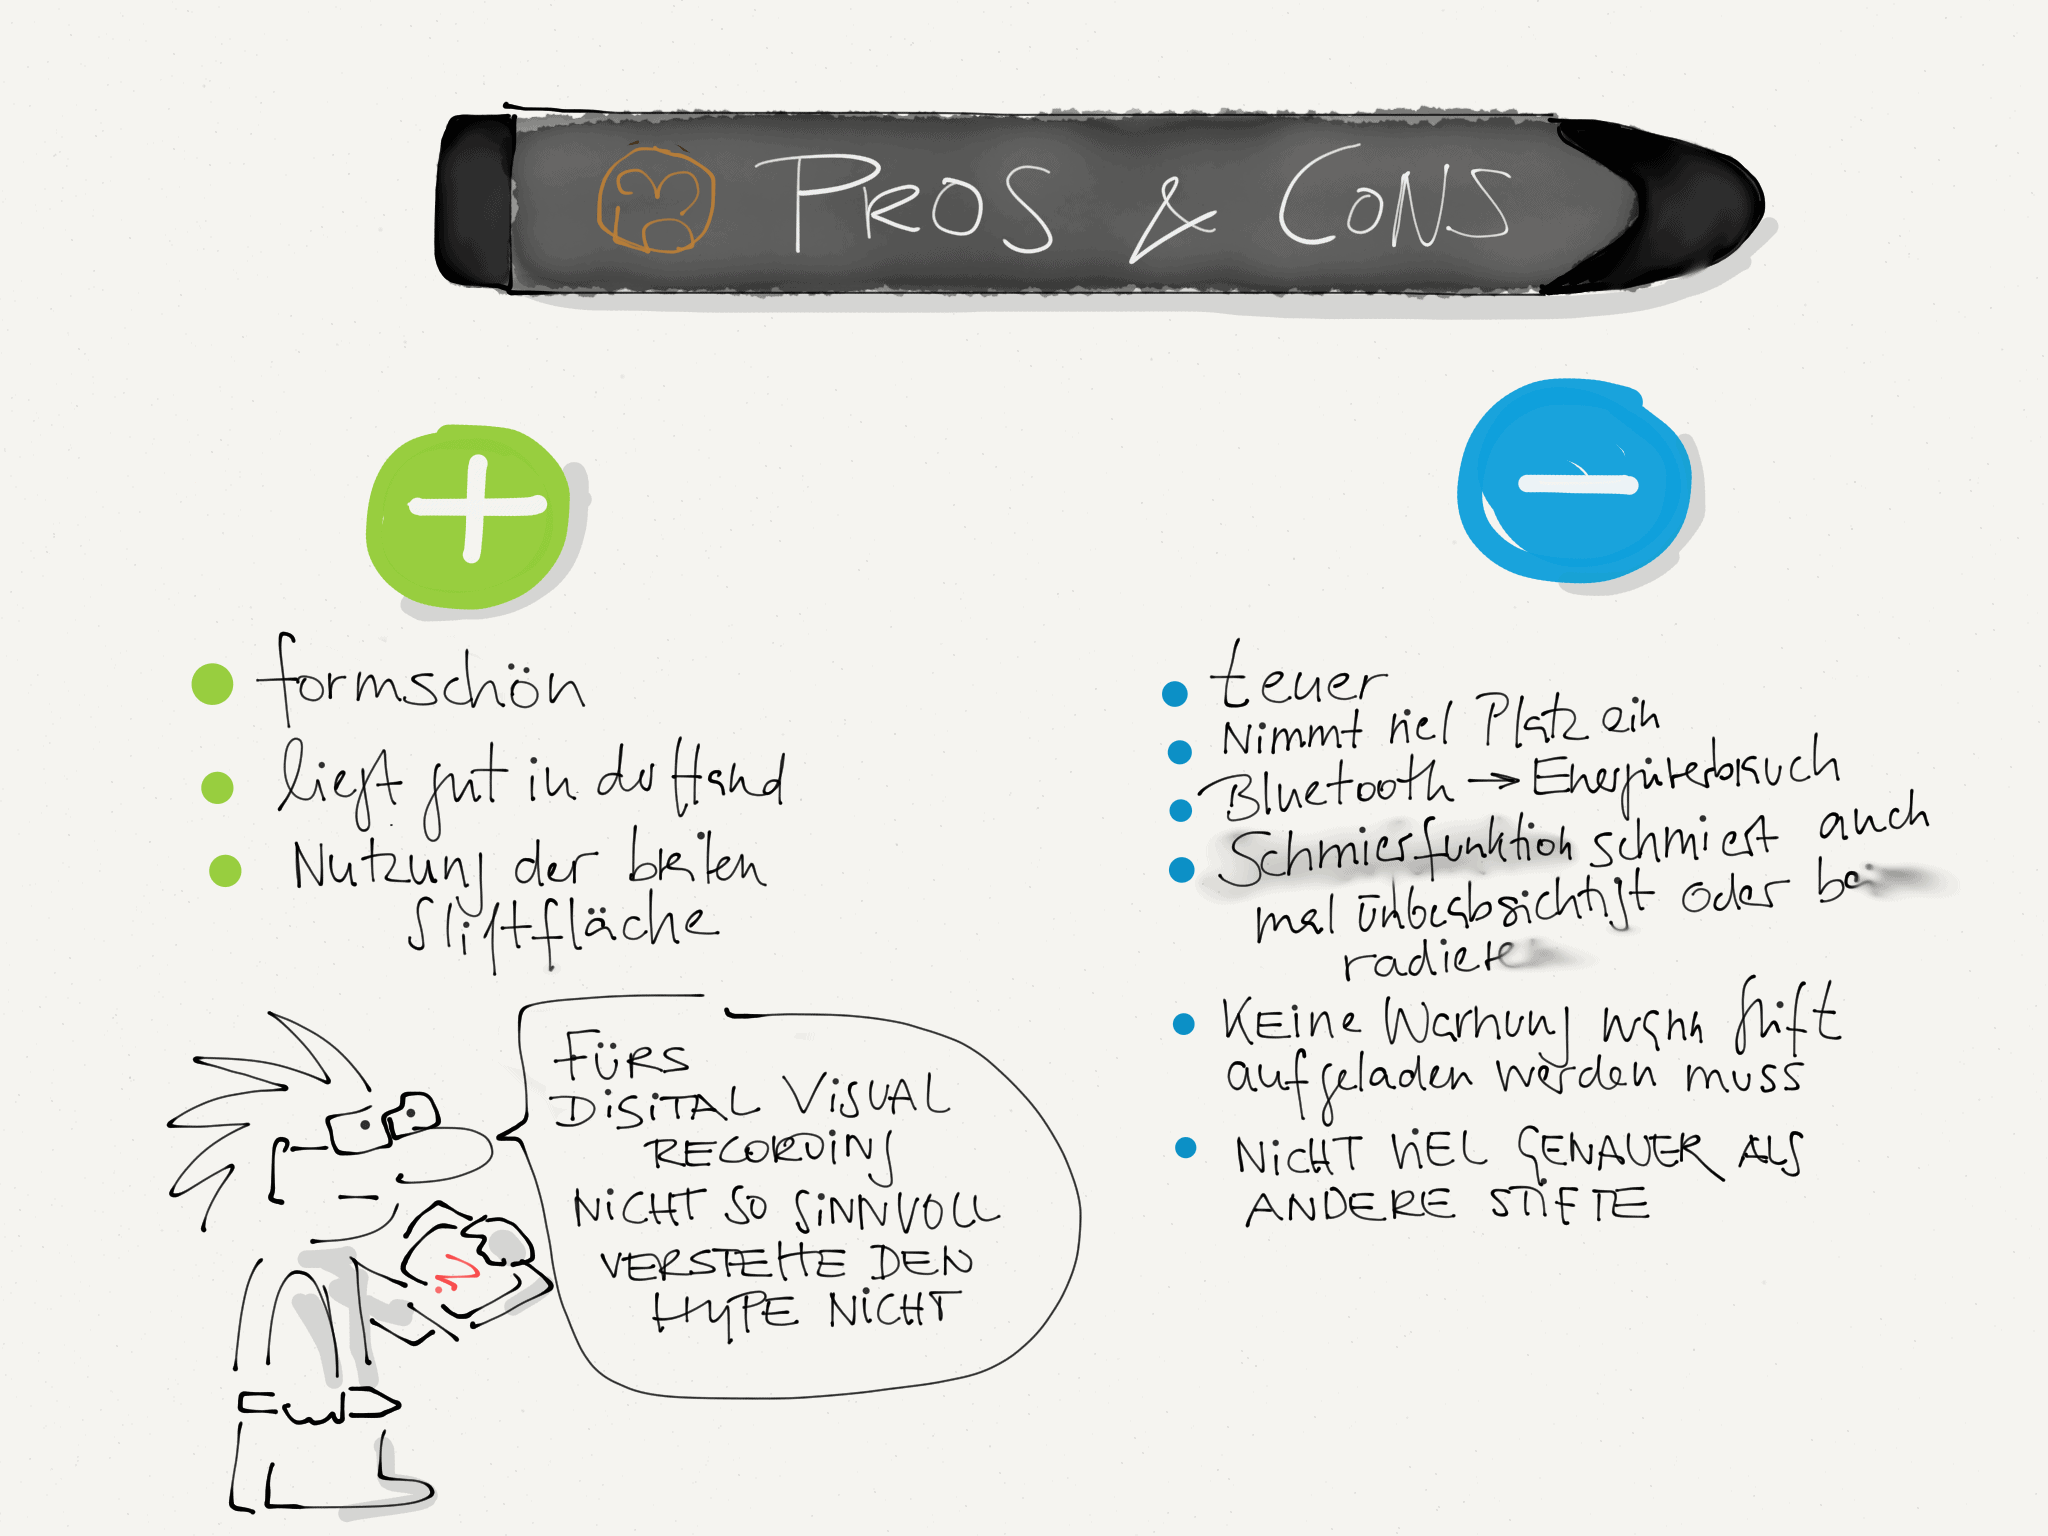 Pros und Cons Pencil